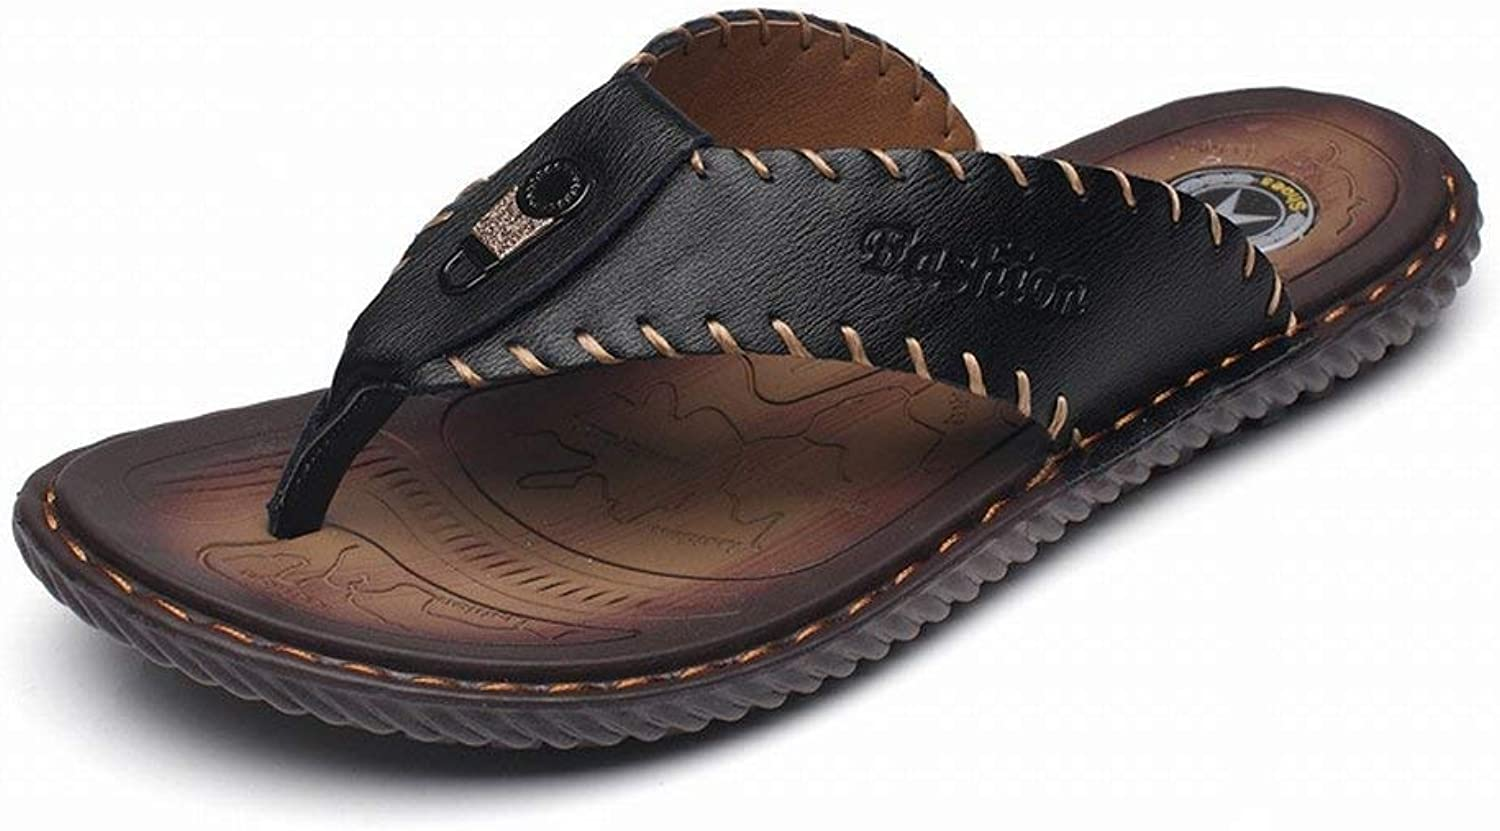 Hhgold Flip Flop Male Fashion Trend Leather Cool Slippers Male Sandals (color   Black, Size   UK 6.5)